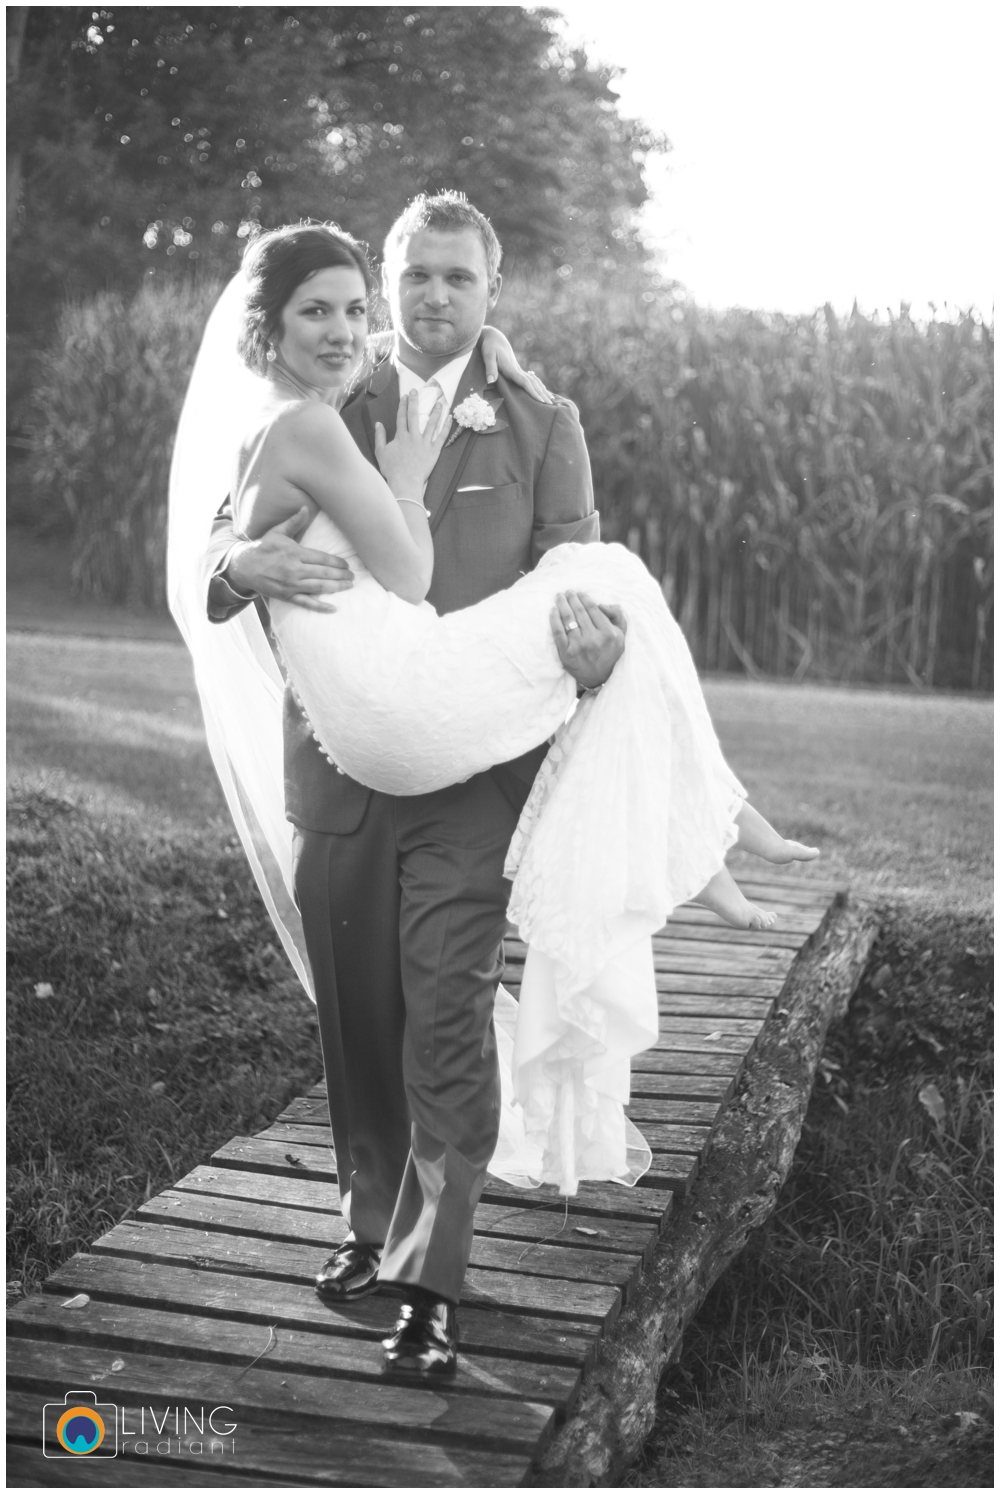 sara+chris-simons-wedding-belleville-winery-pa-living-radiant-photography_0049.jpg